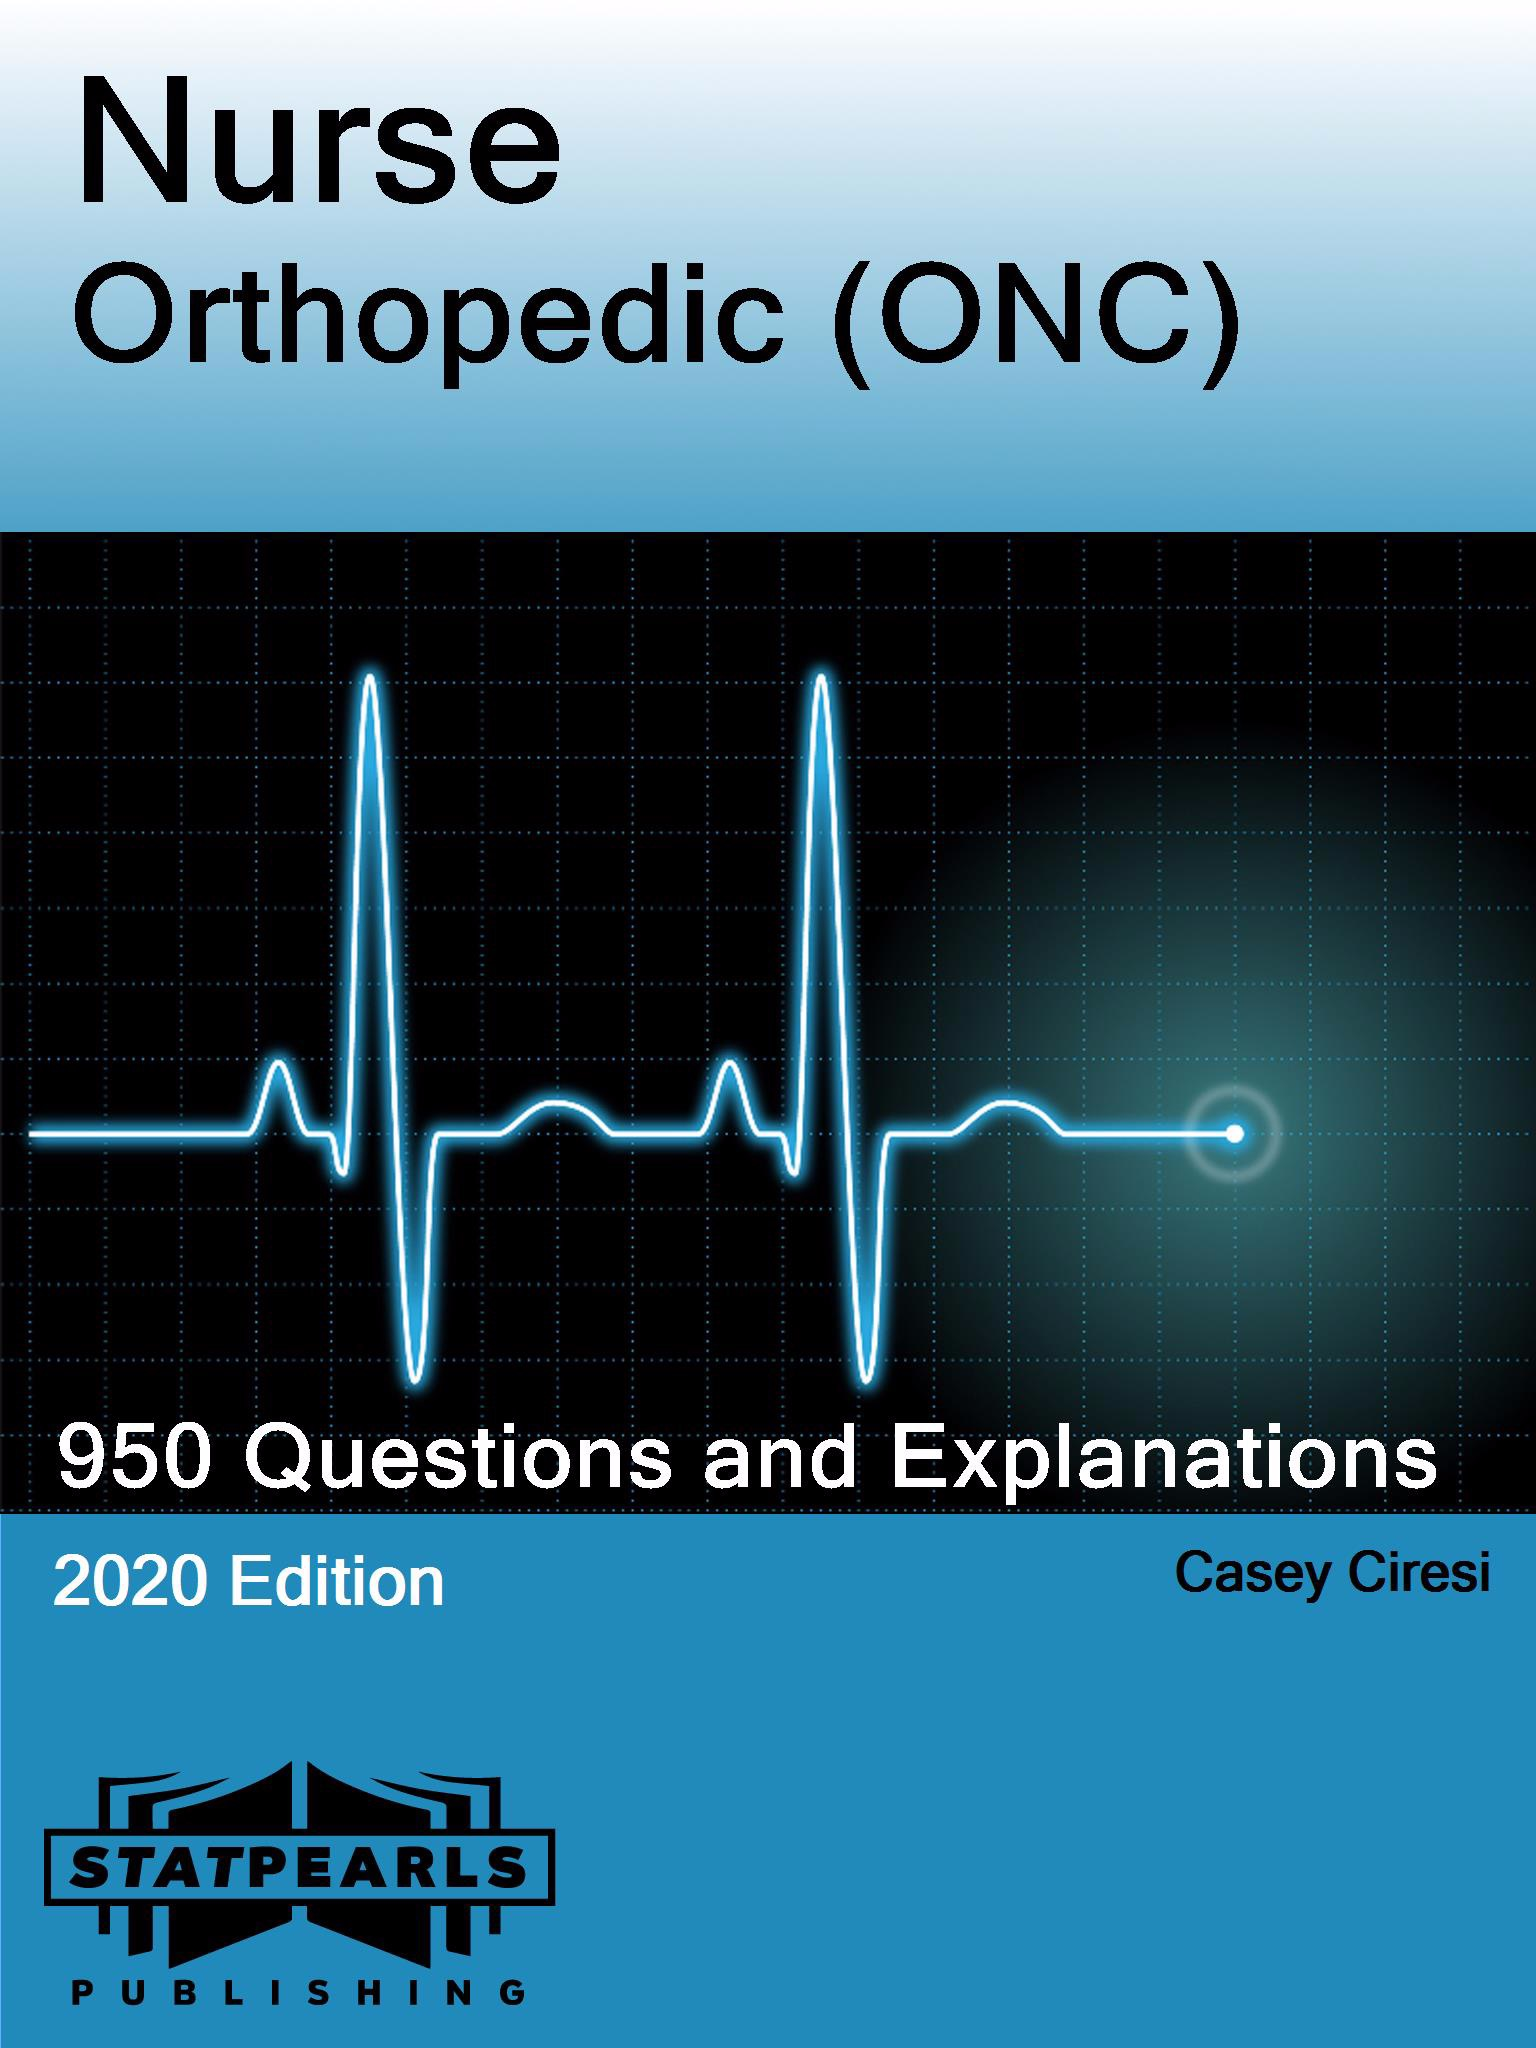 Nurse Orthopedic (ONC)